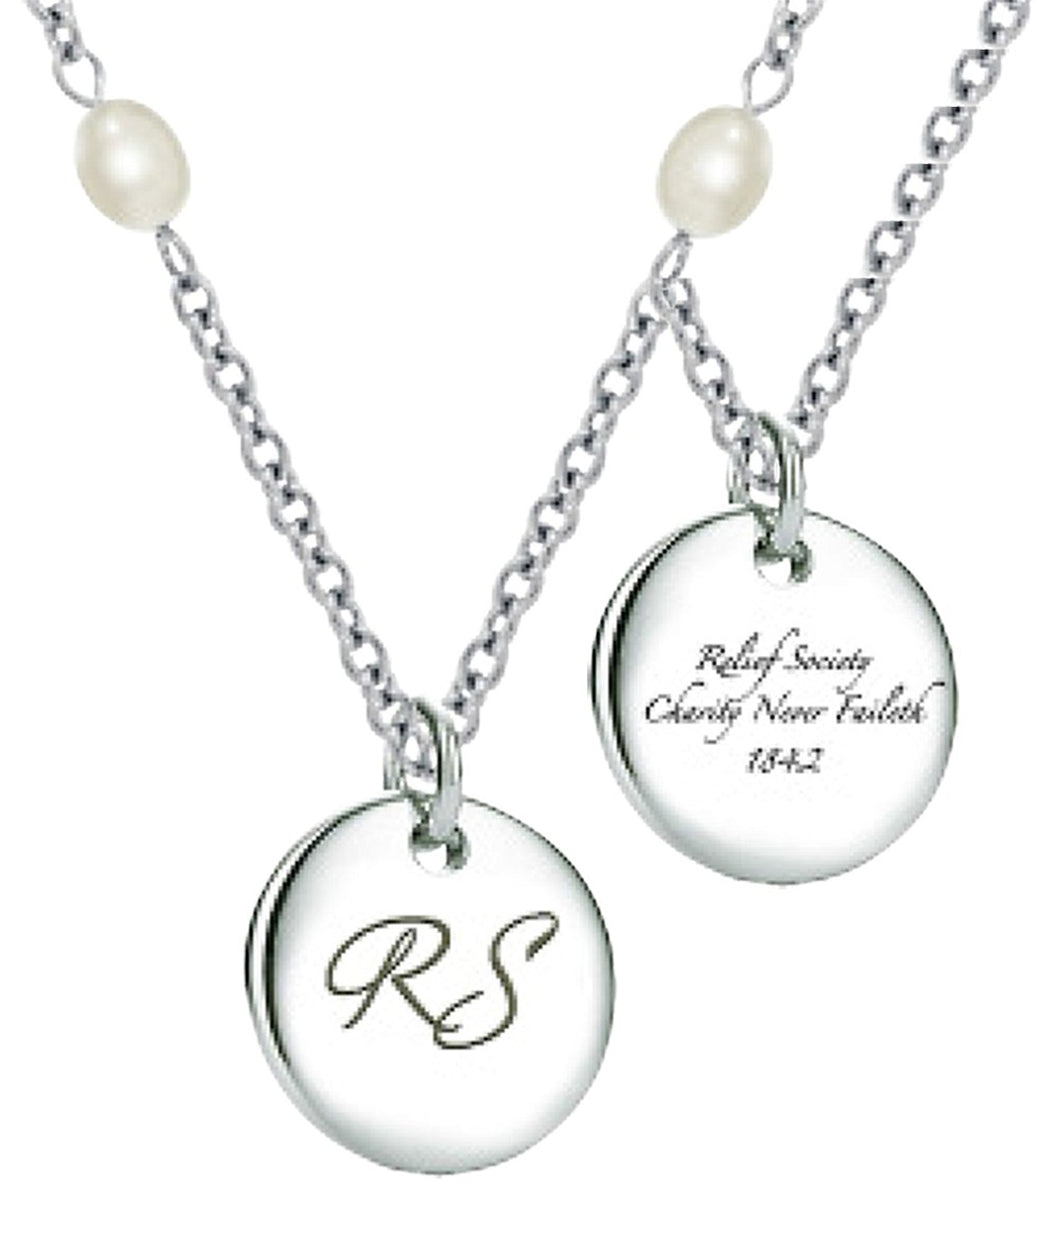 K13N Relief Society Necklace One Moment in Time